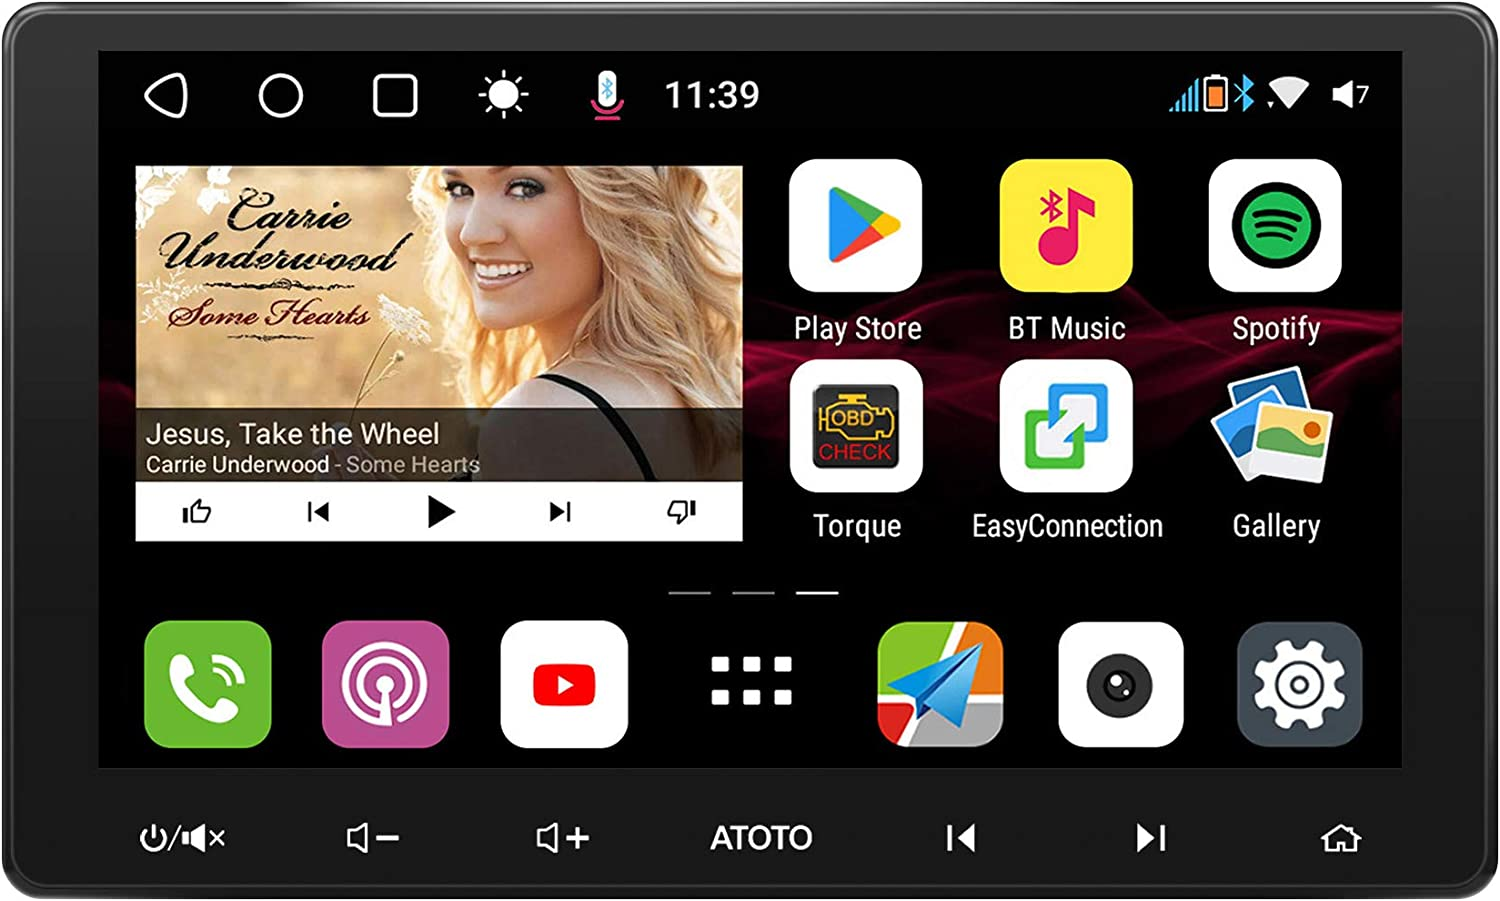 IAH10D//QLED Display ATOTO S8 Gen2 Andriod Car in-Dash Navigation,Premium//S8G2114PM,USB Tethering,Dual Bluetooth w//aptX HD,Android Auto /& CarPlay,HD VSV Parking with LRV,SCVC and More